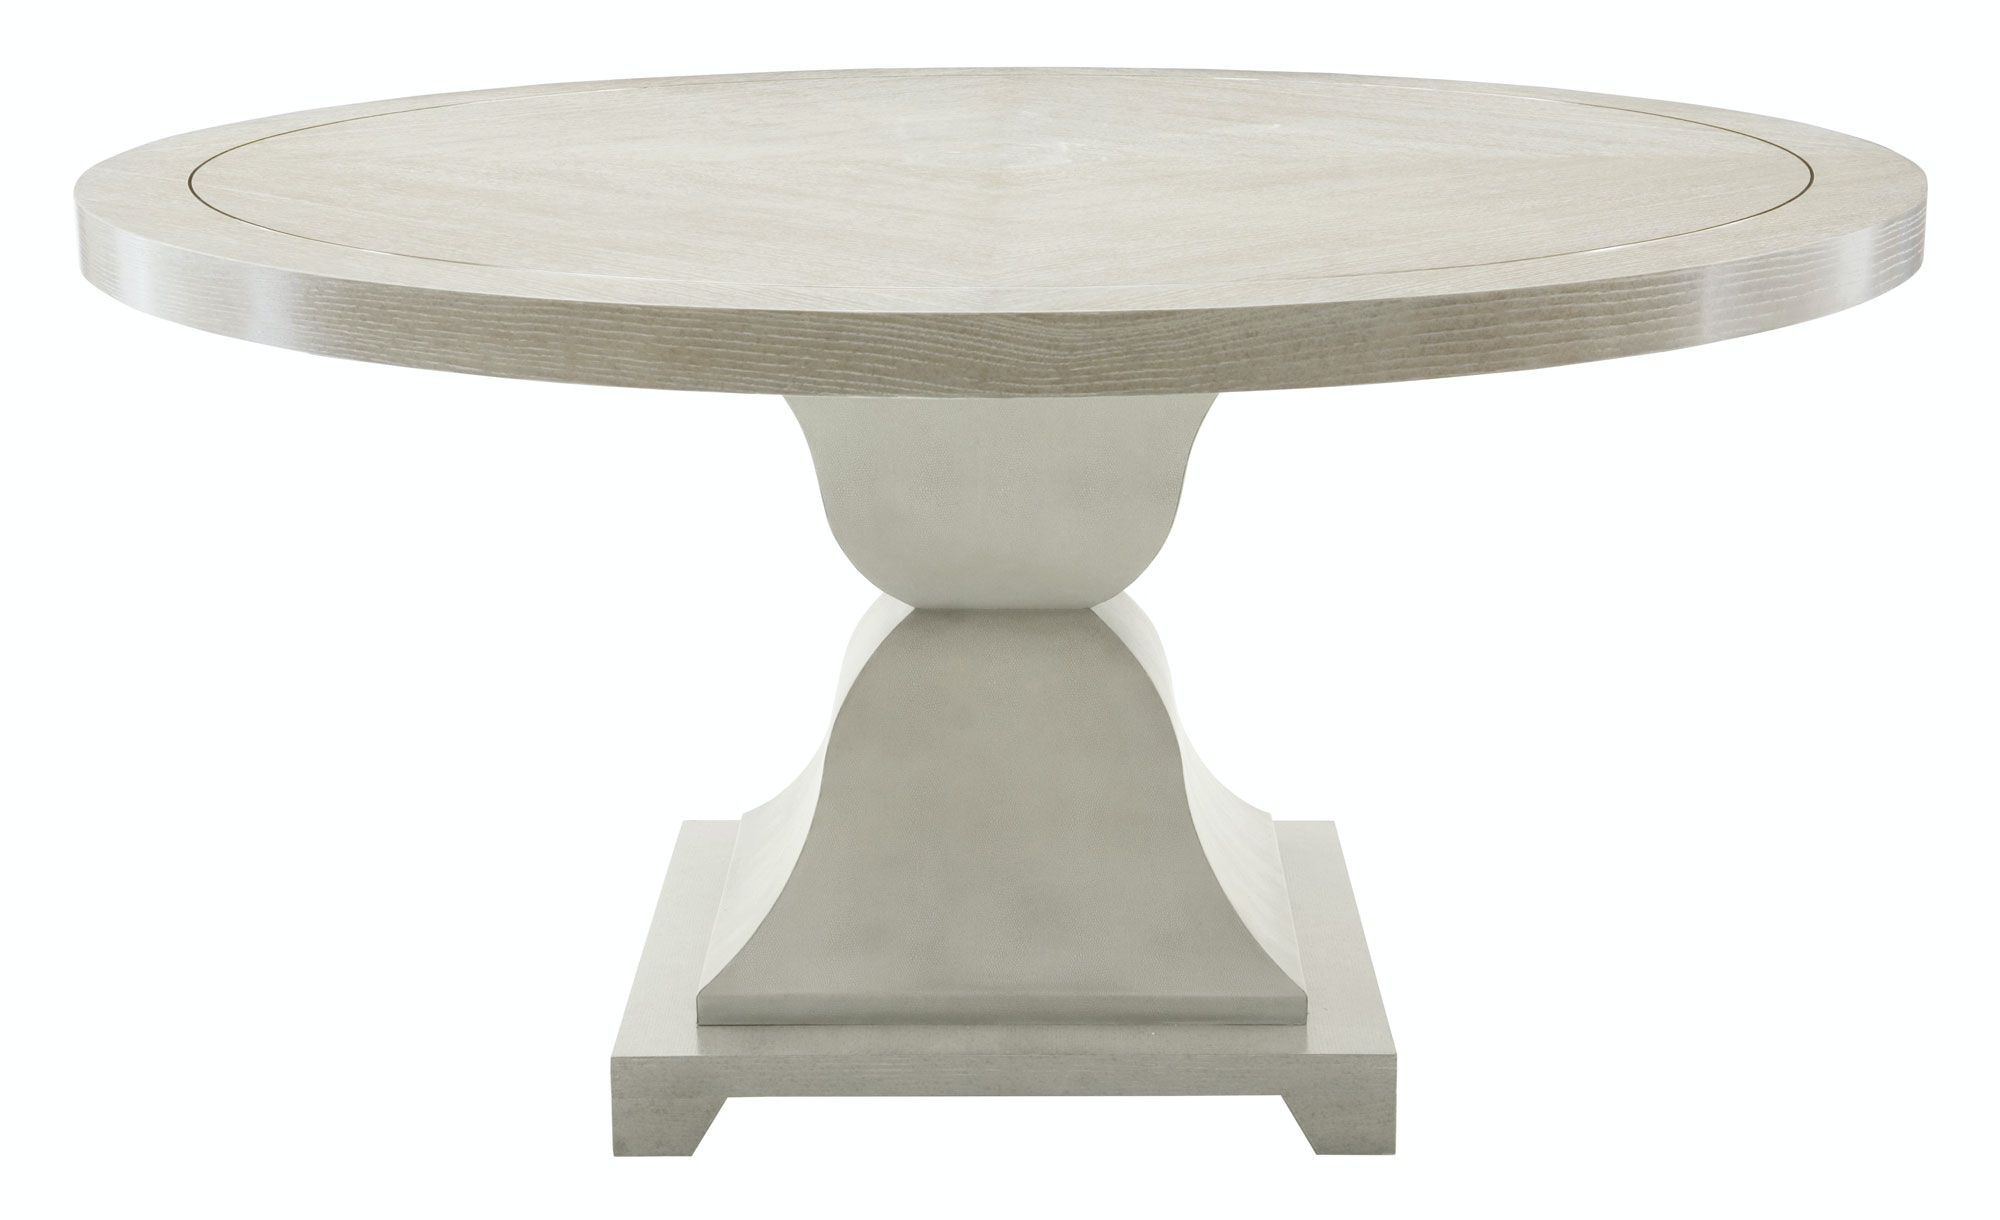 Ordinaire Bernhardt Round Dining Table 363 271G/ 363 273G